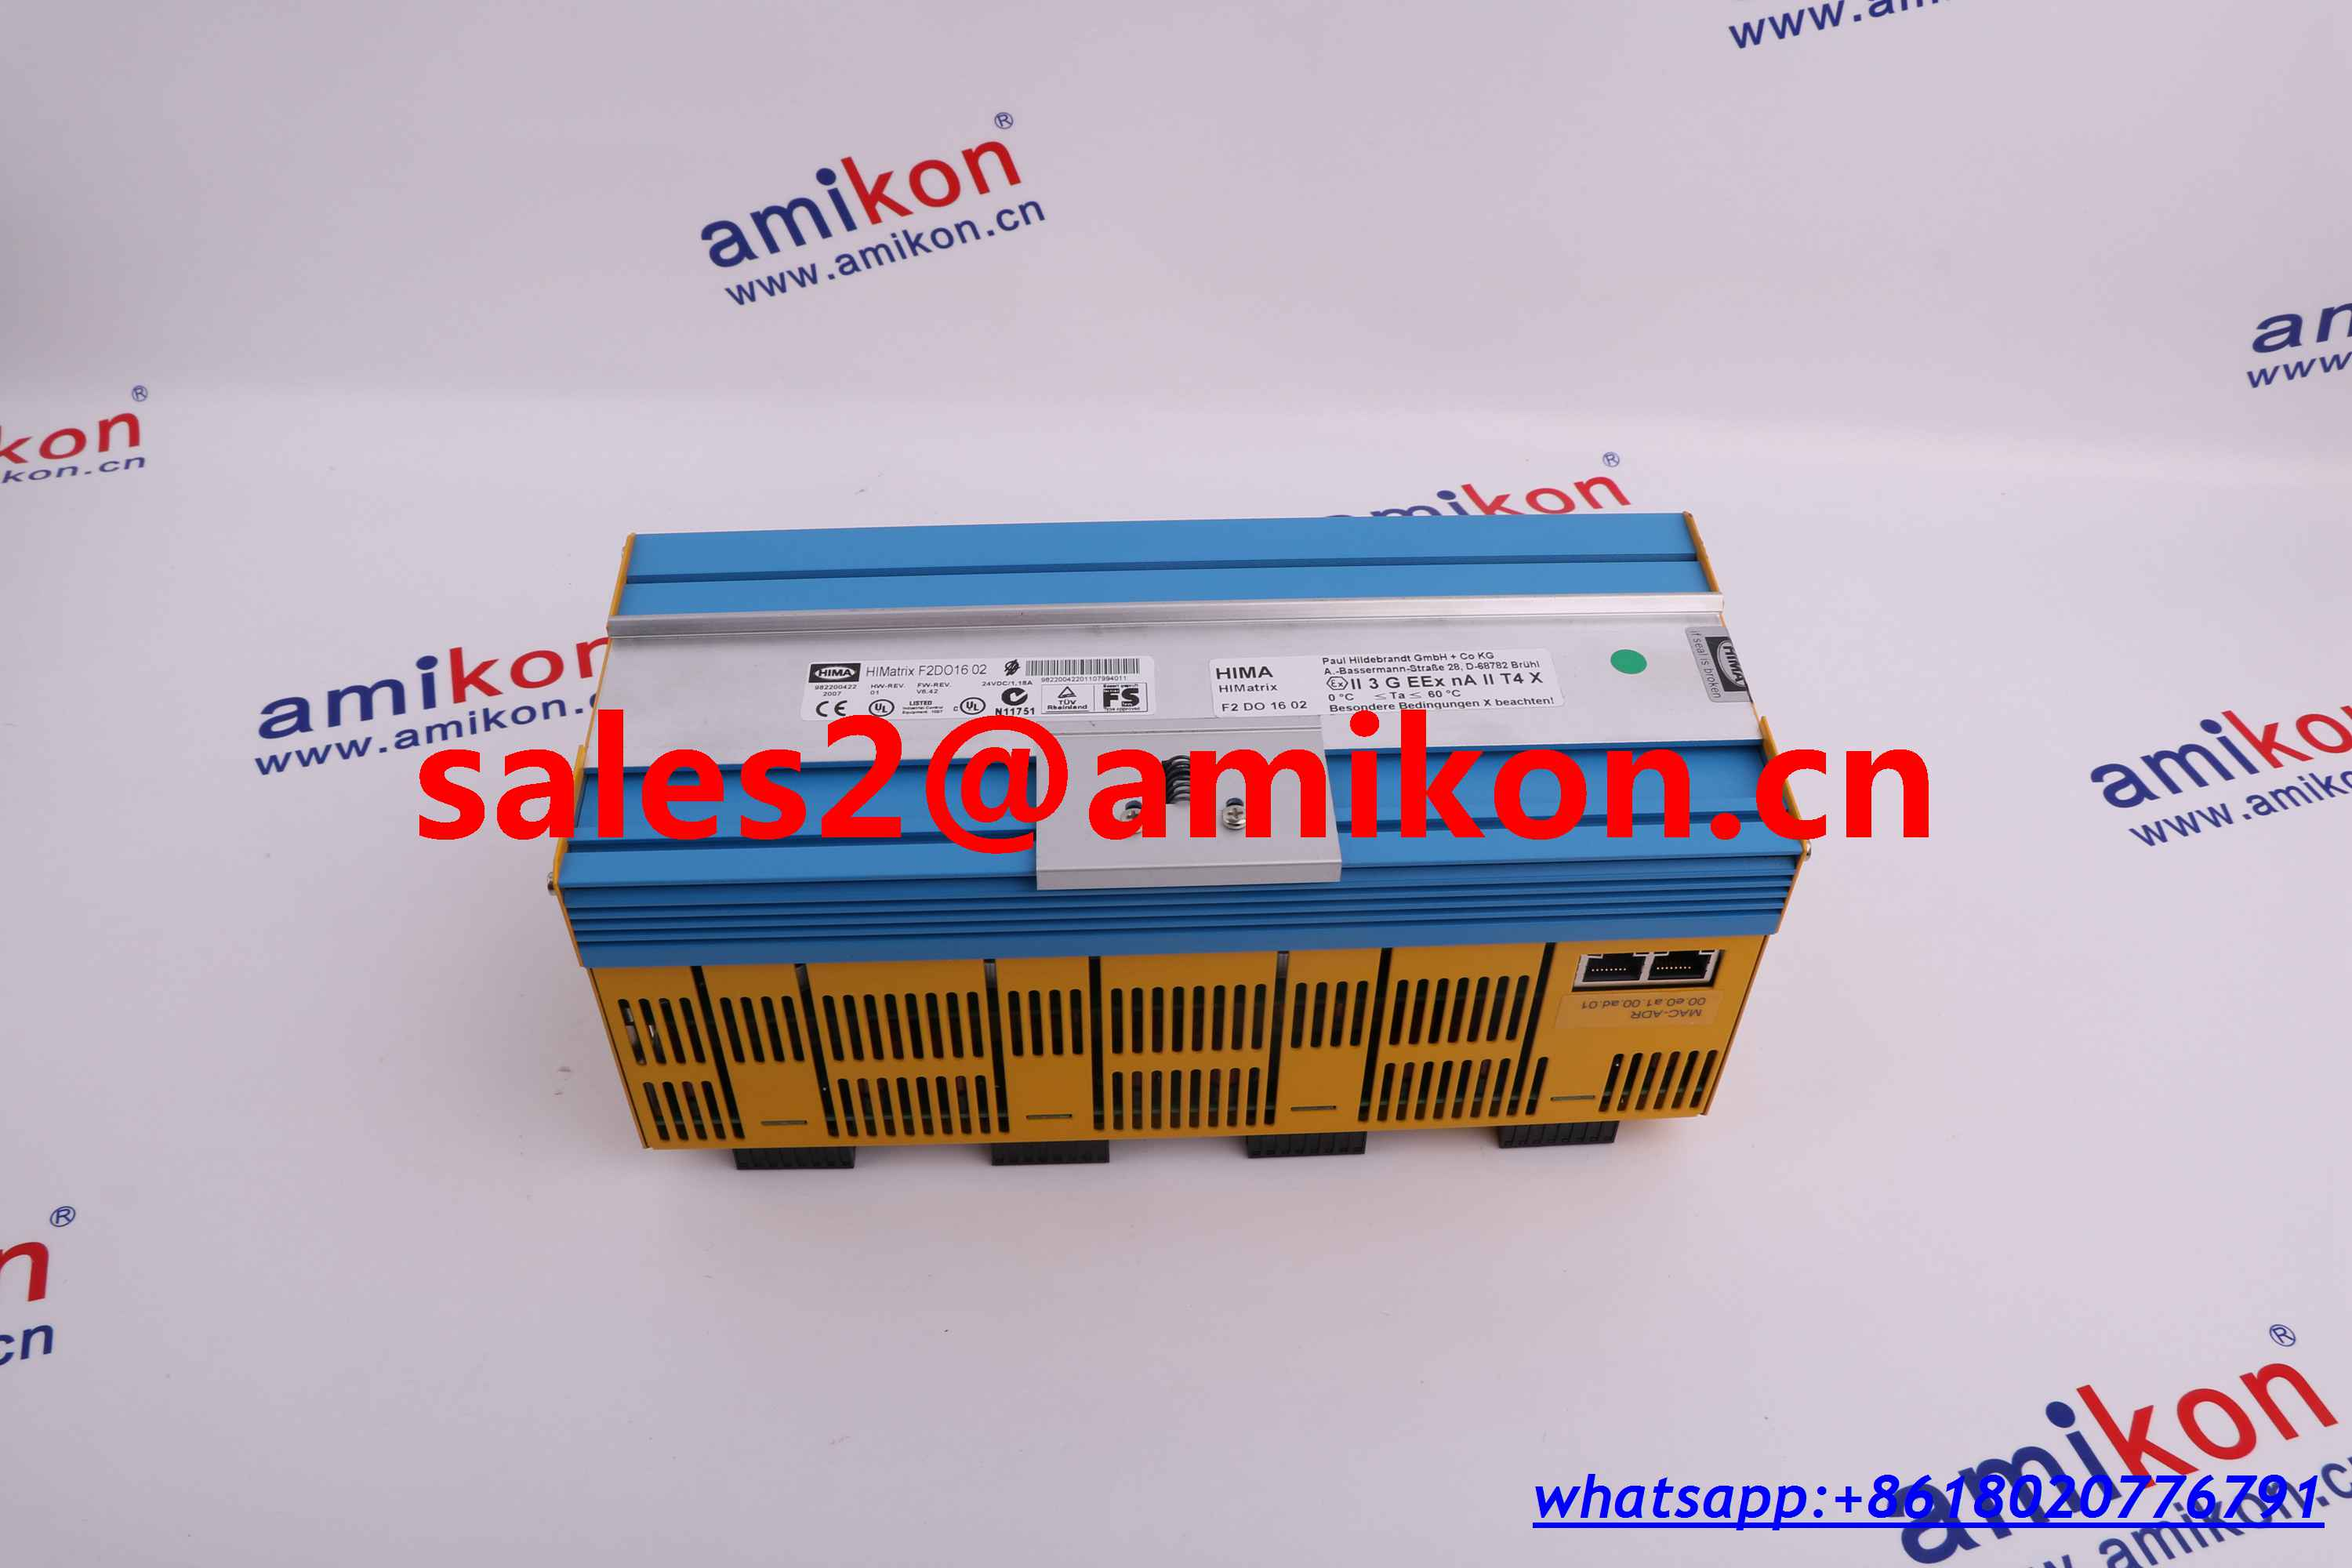 HIMA PN: 981621502 F6215 8 CHANNEL ANALOG INPUT MODULE. FOR CURRENT AND VOLTAGE ,PT100